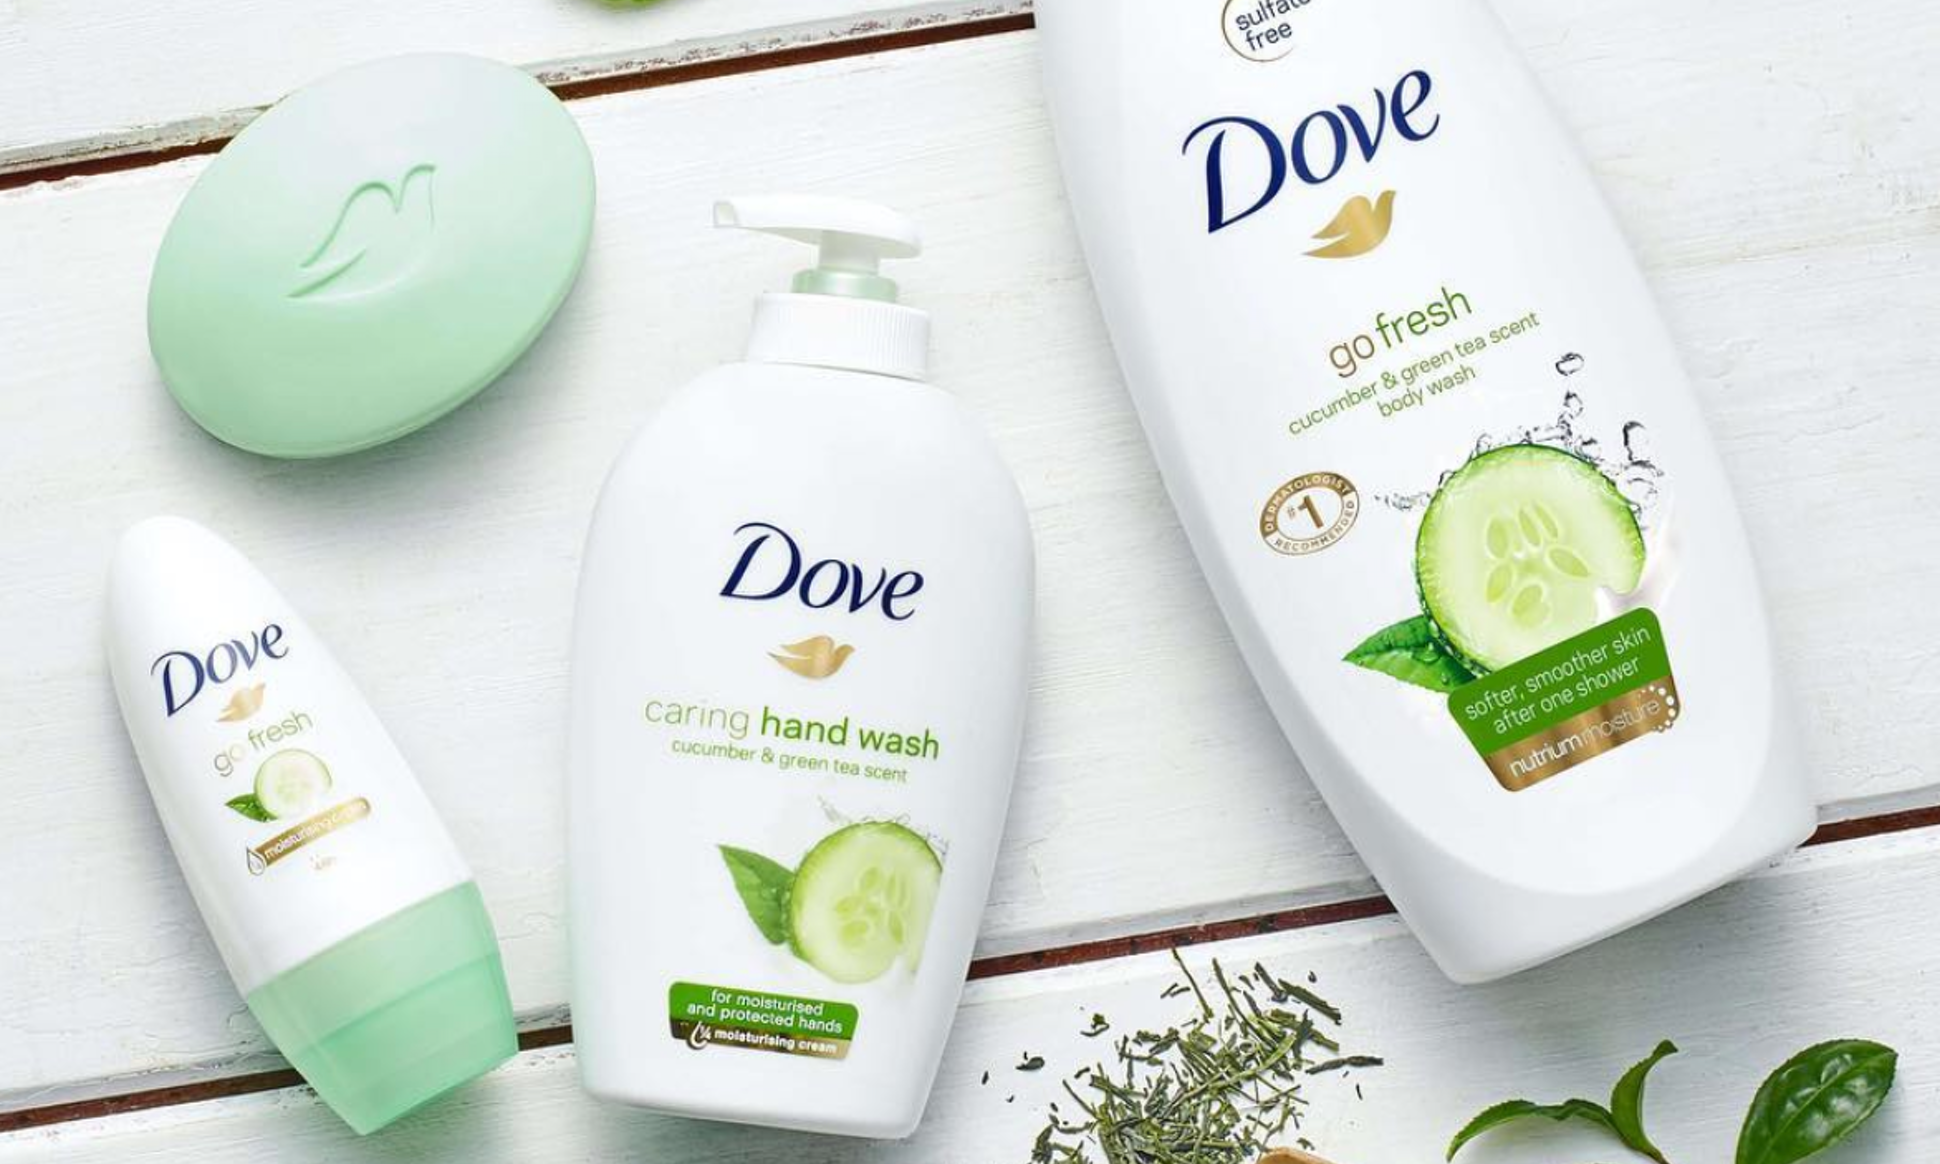 Dove Products Are Now Officially CrueltyFree Dove body